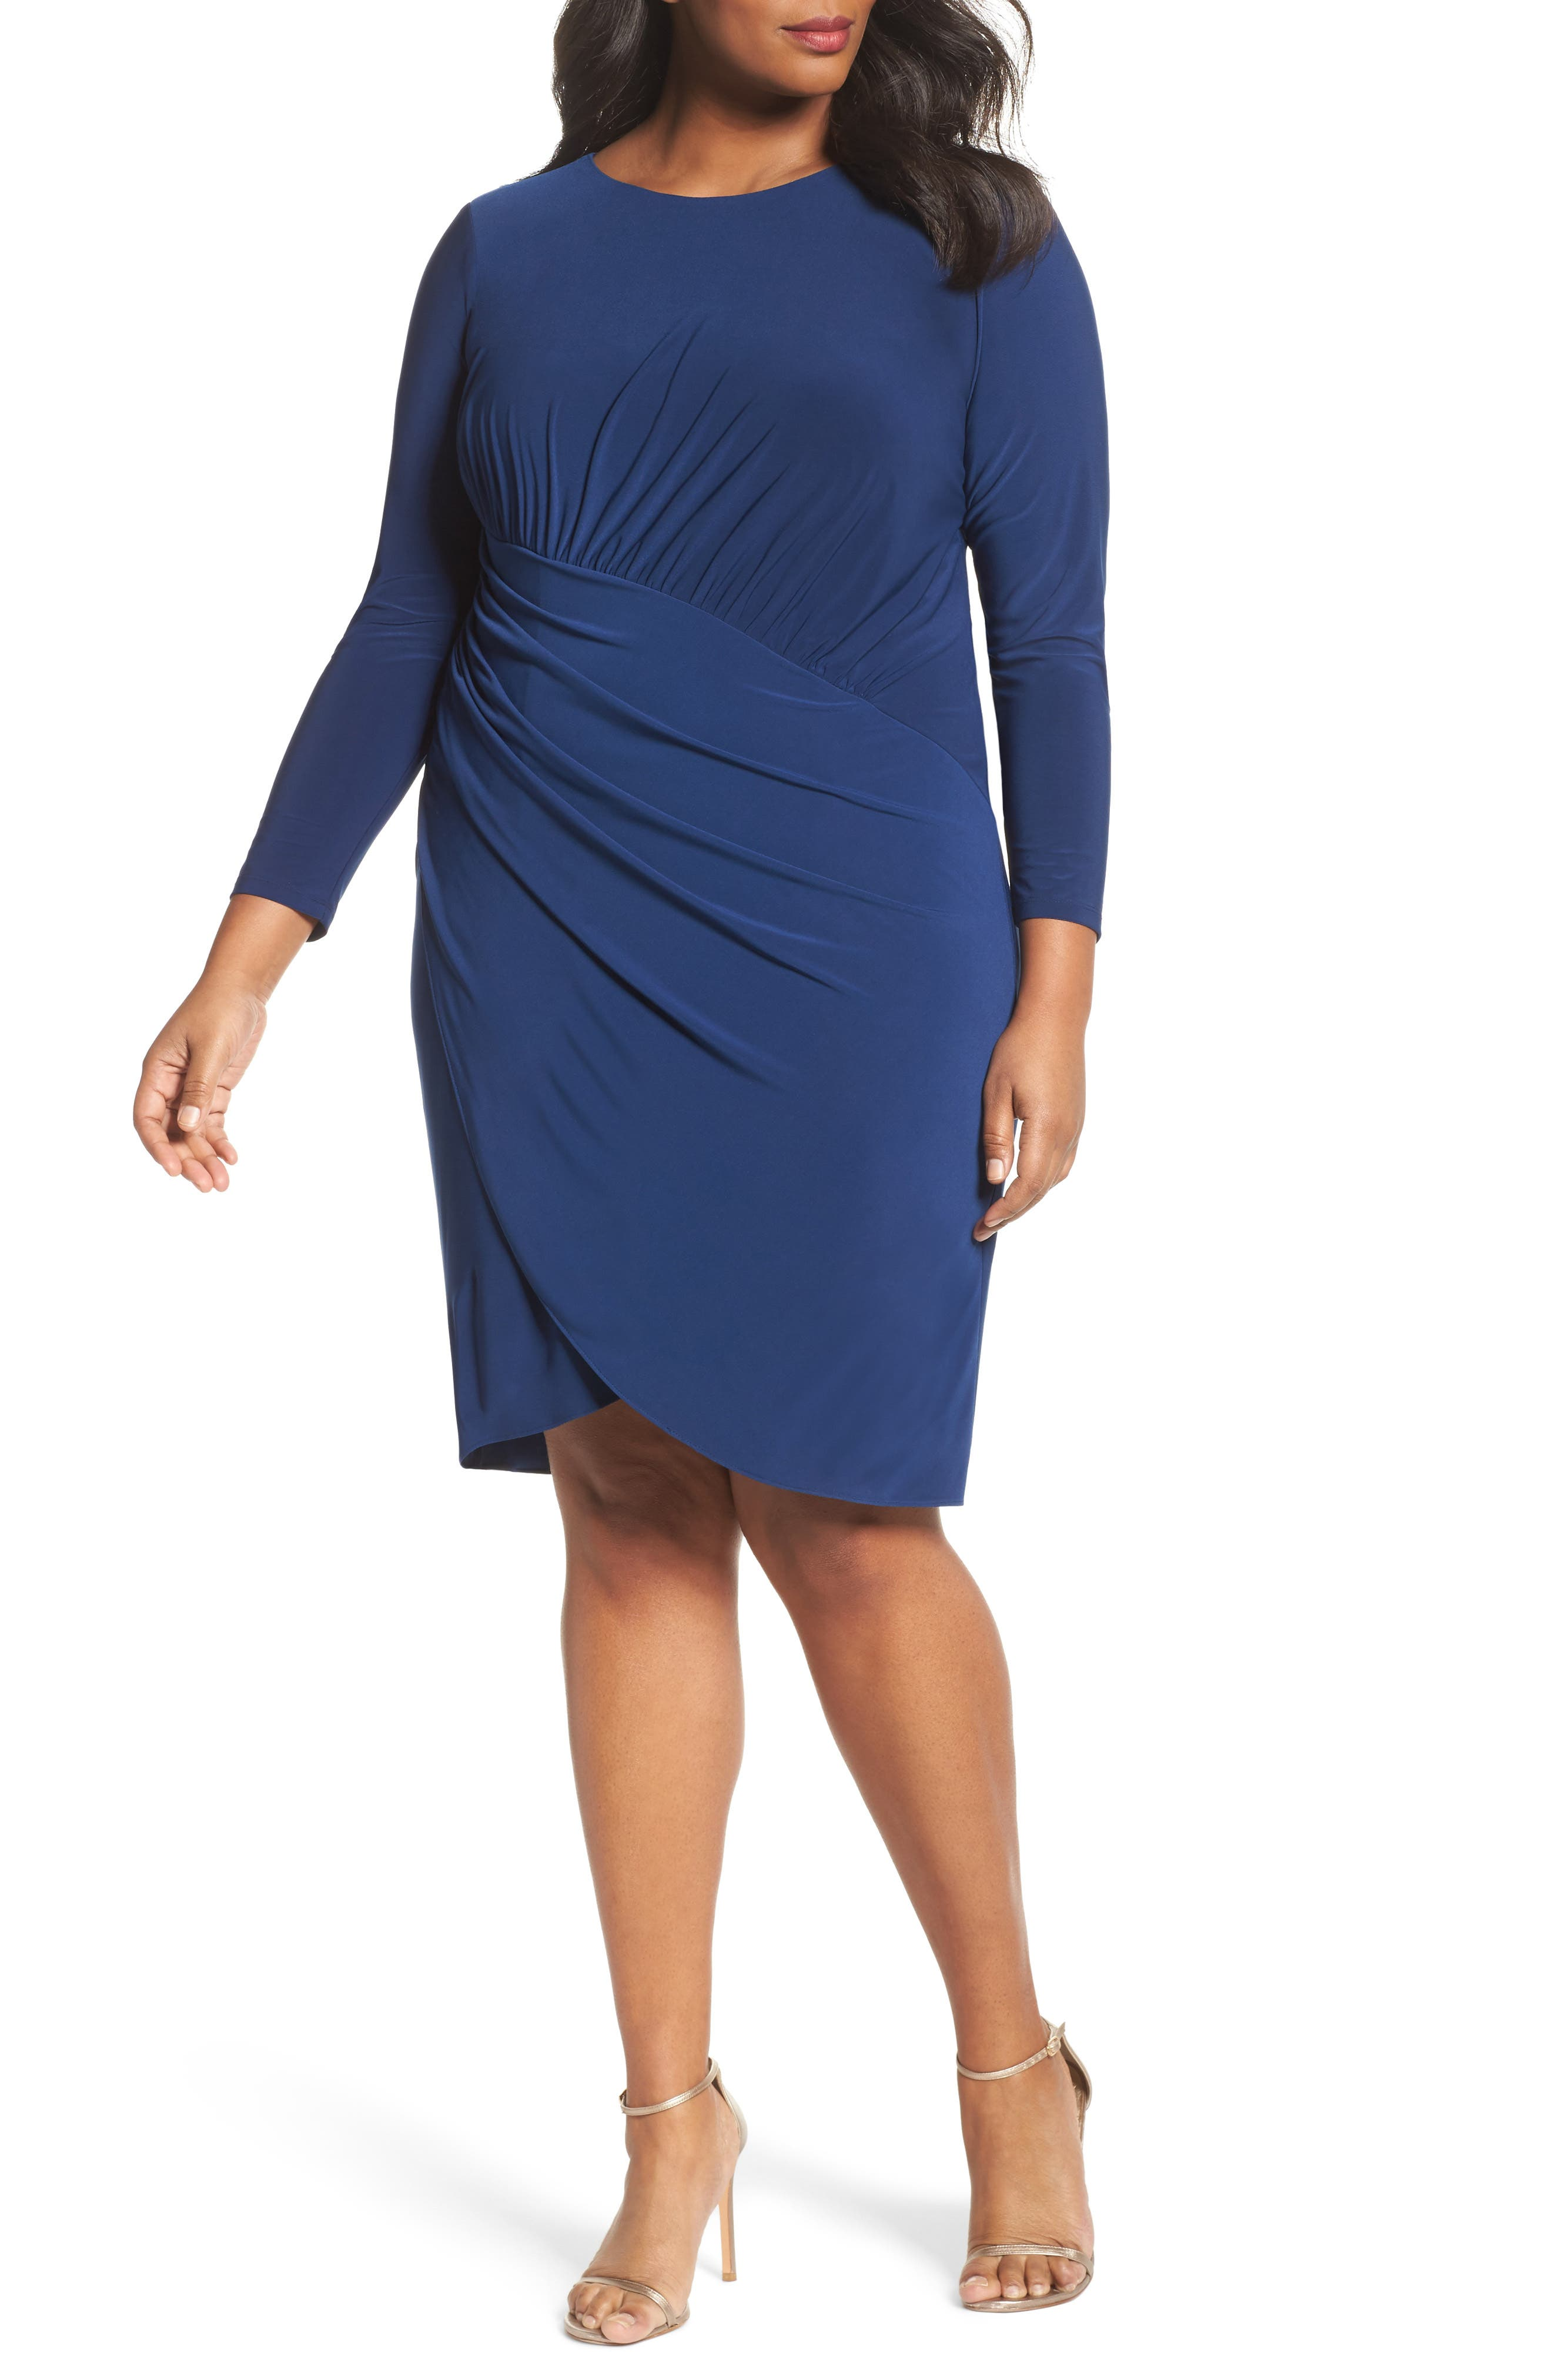 Alternate Image 1 Selected - Adrianna Papell Faux Wrap Jersey Dress (Plus Size)